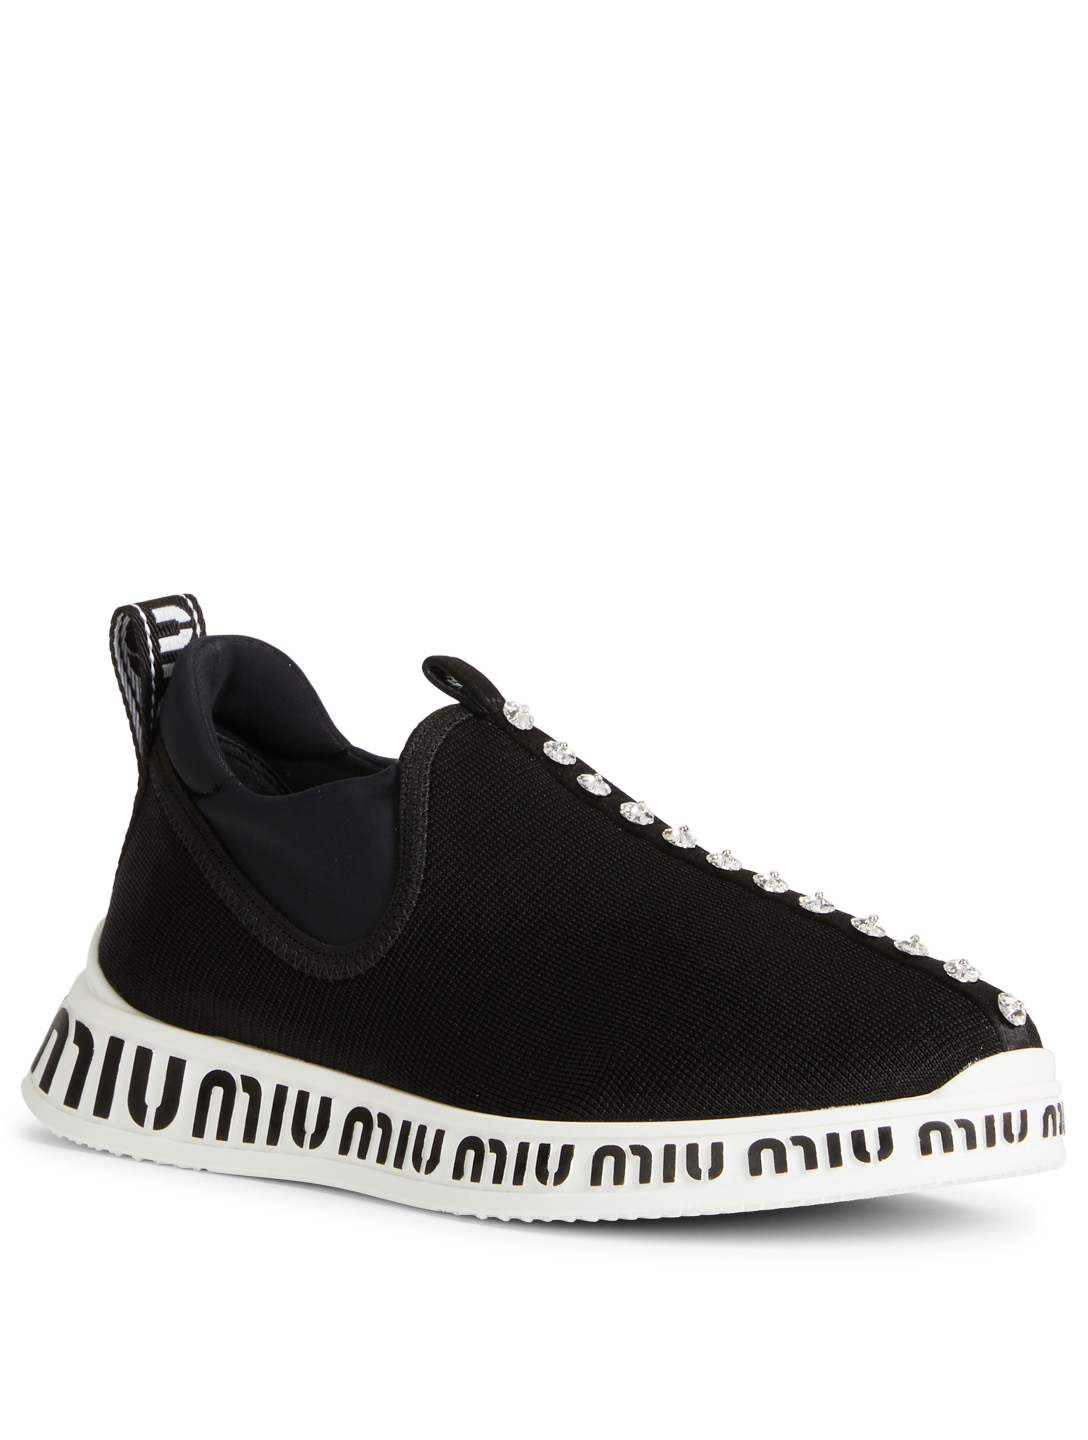 MIU MIU Technical Fabric Slip-On Sneakers Womens Black